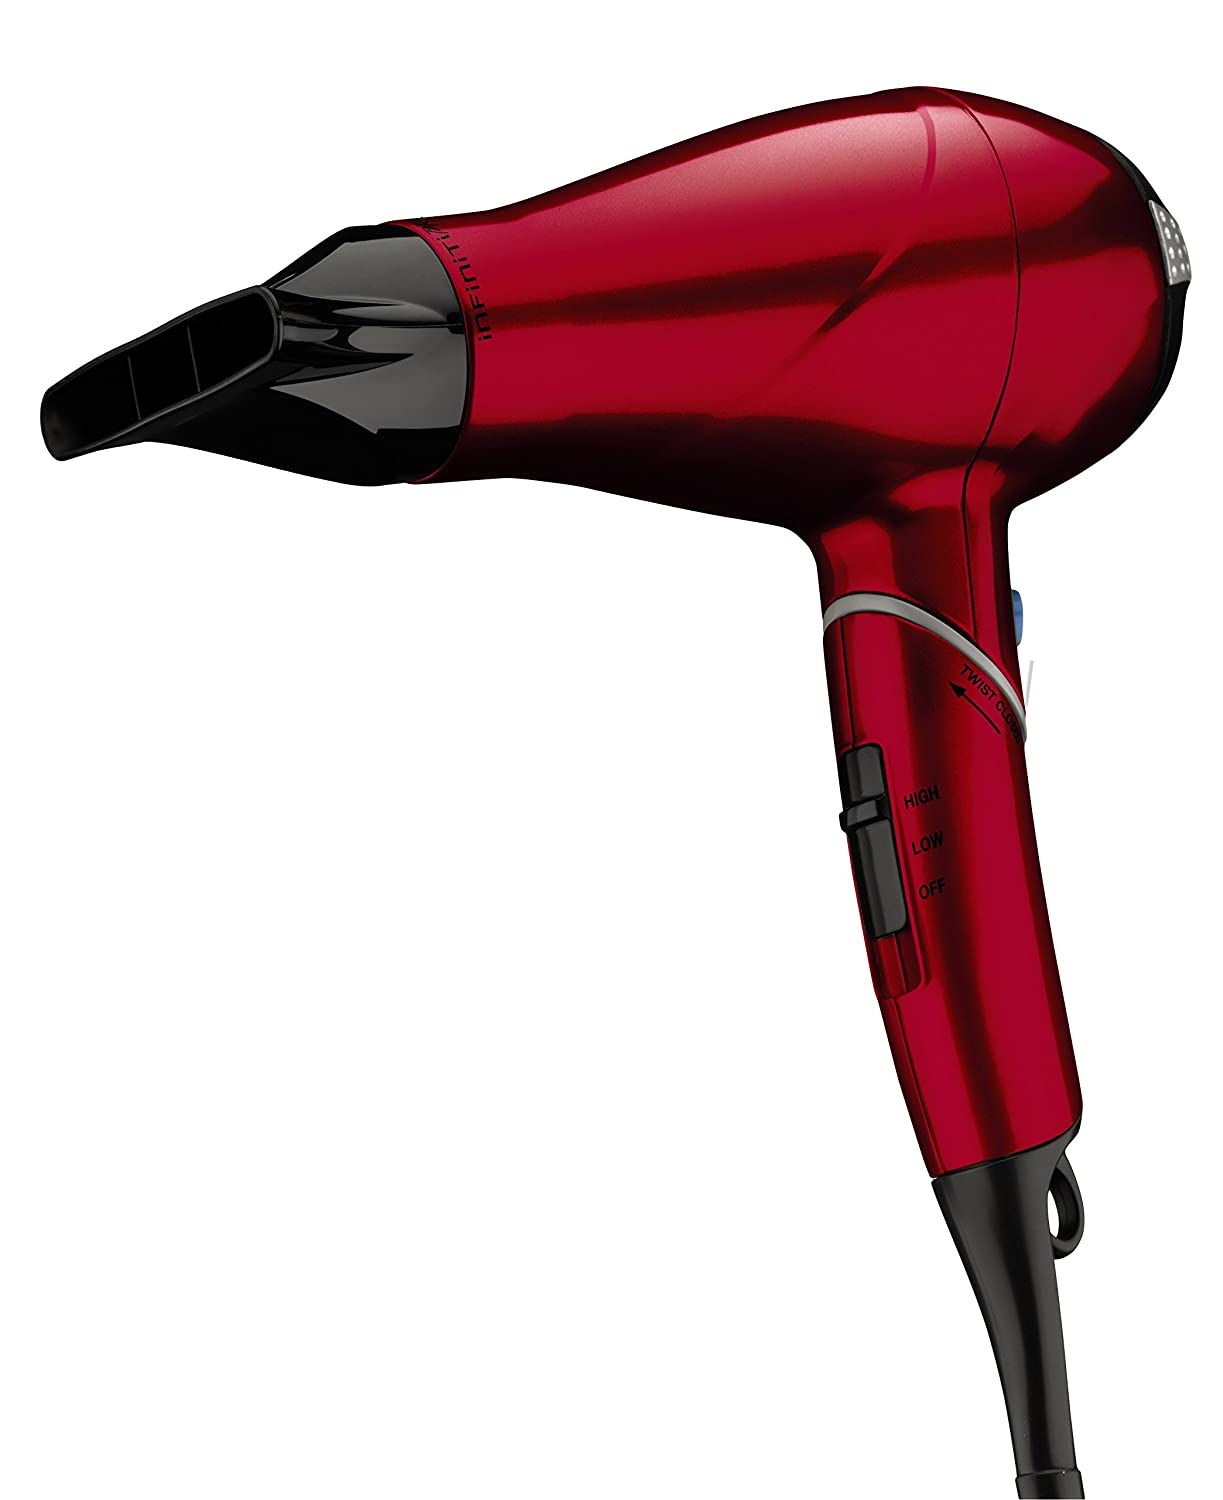 INFINITIPRO BY CONAIR 1875 Watt Compact AC Motor Travel Styler/Hair Dryer with Twist Folding Handle; Red